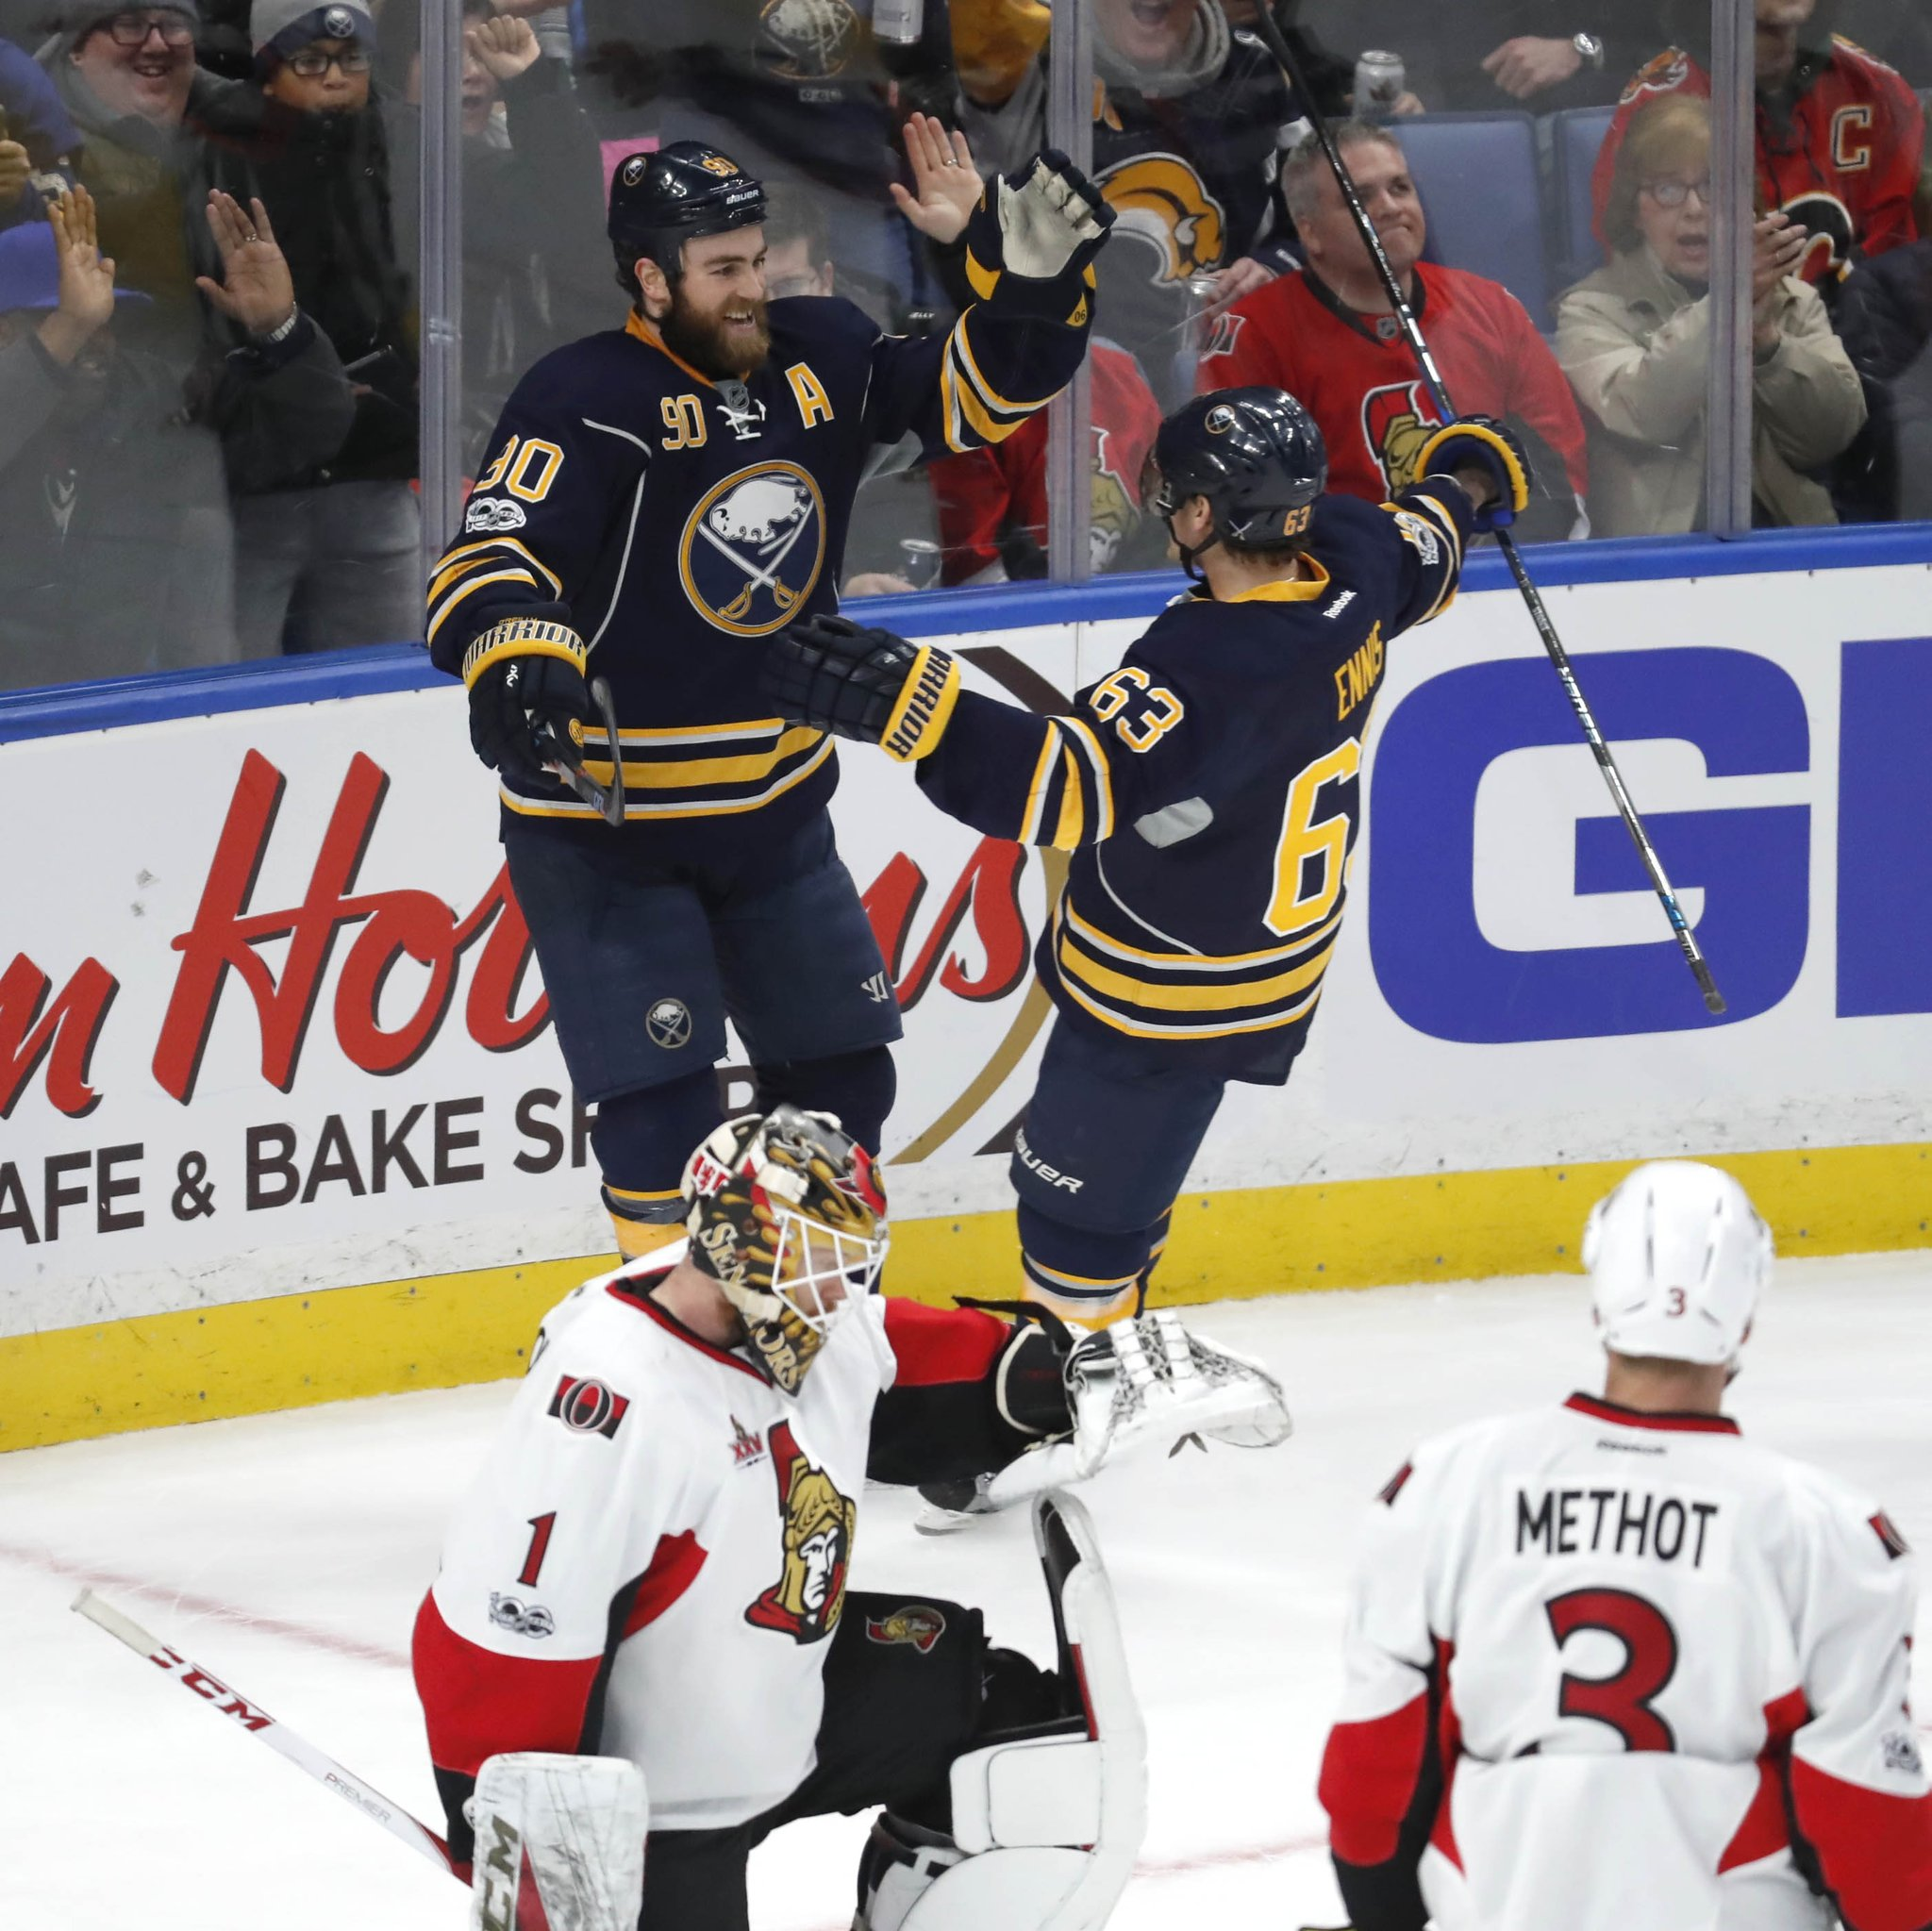 Ryan O'Reilly and Tyler Ennis (63) know the Sabres need to be consistent. (Harry Scull Jr./Buffalo News)